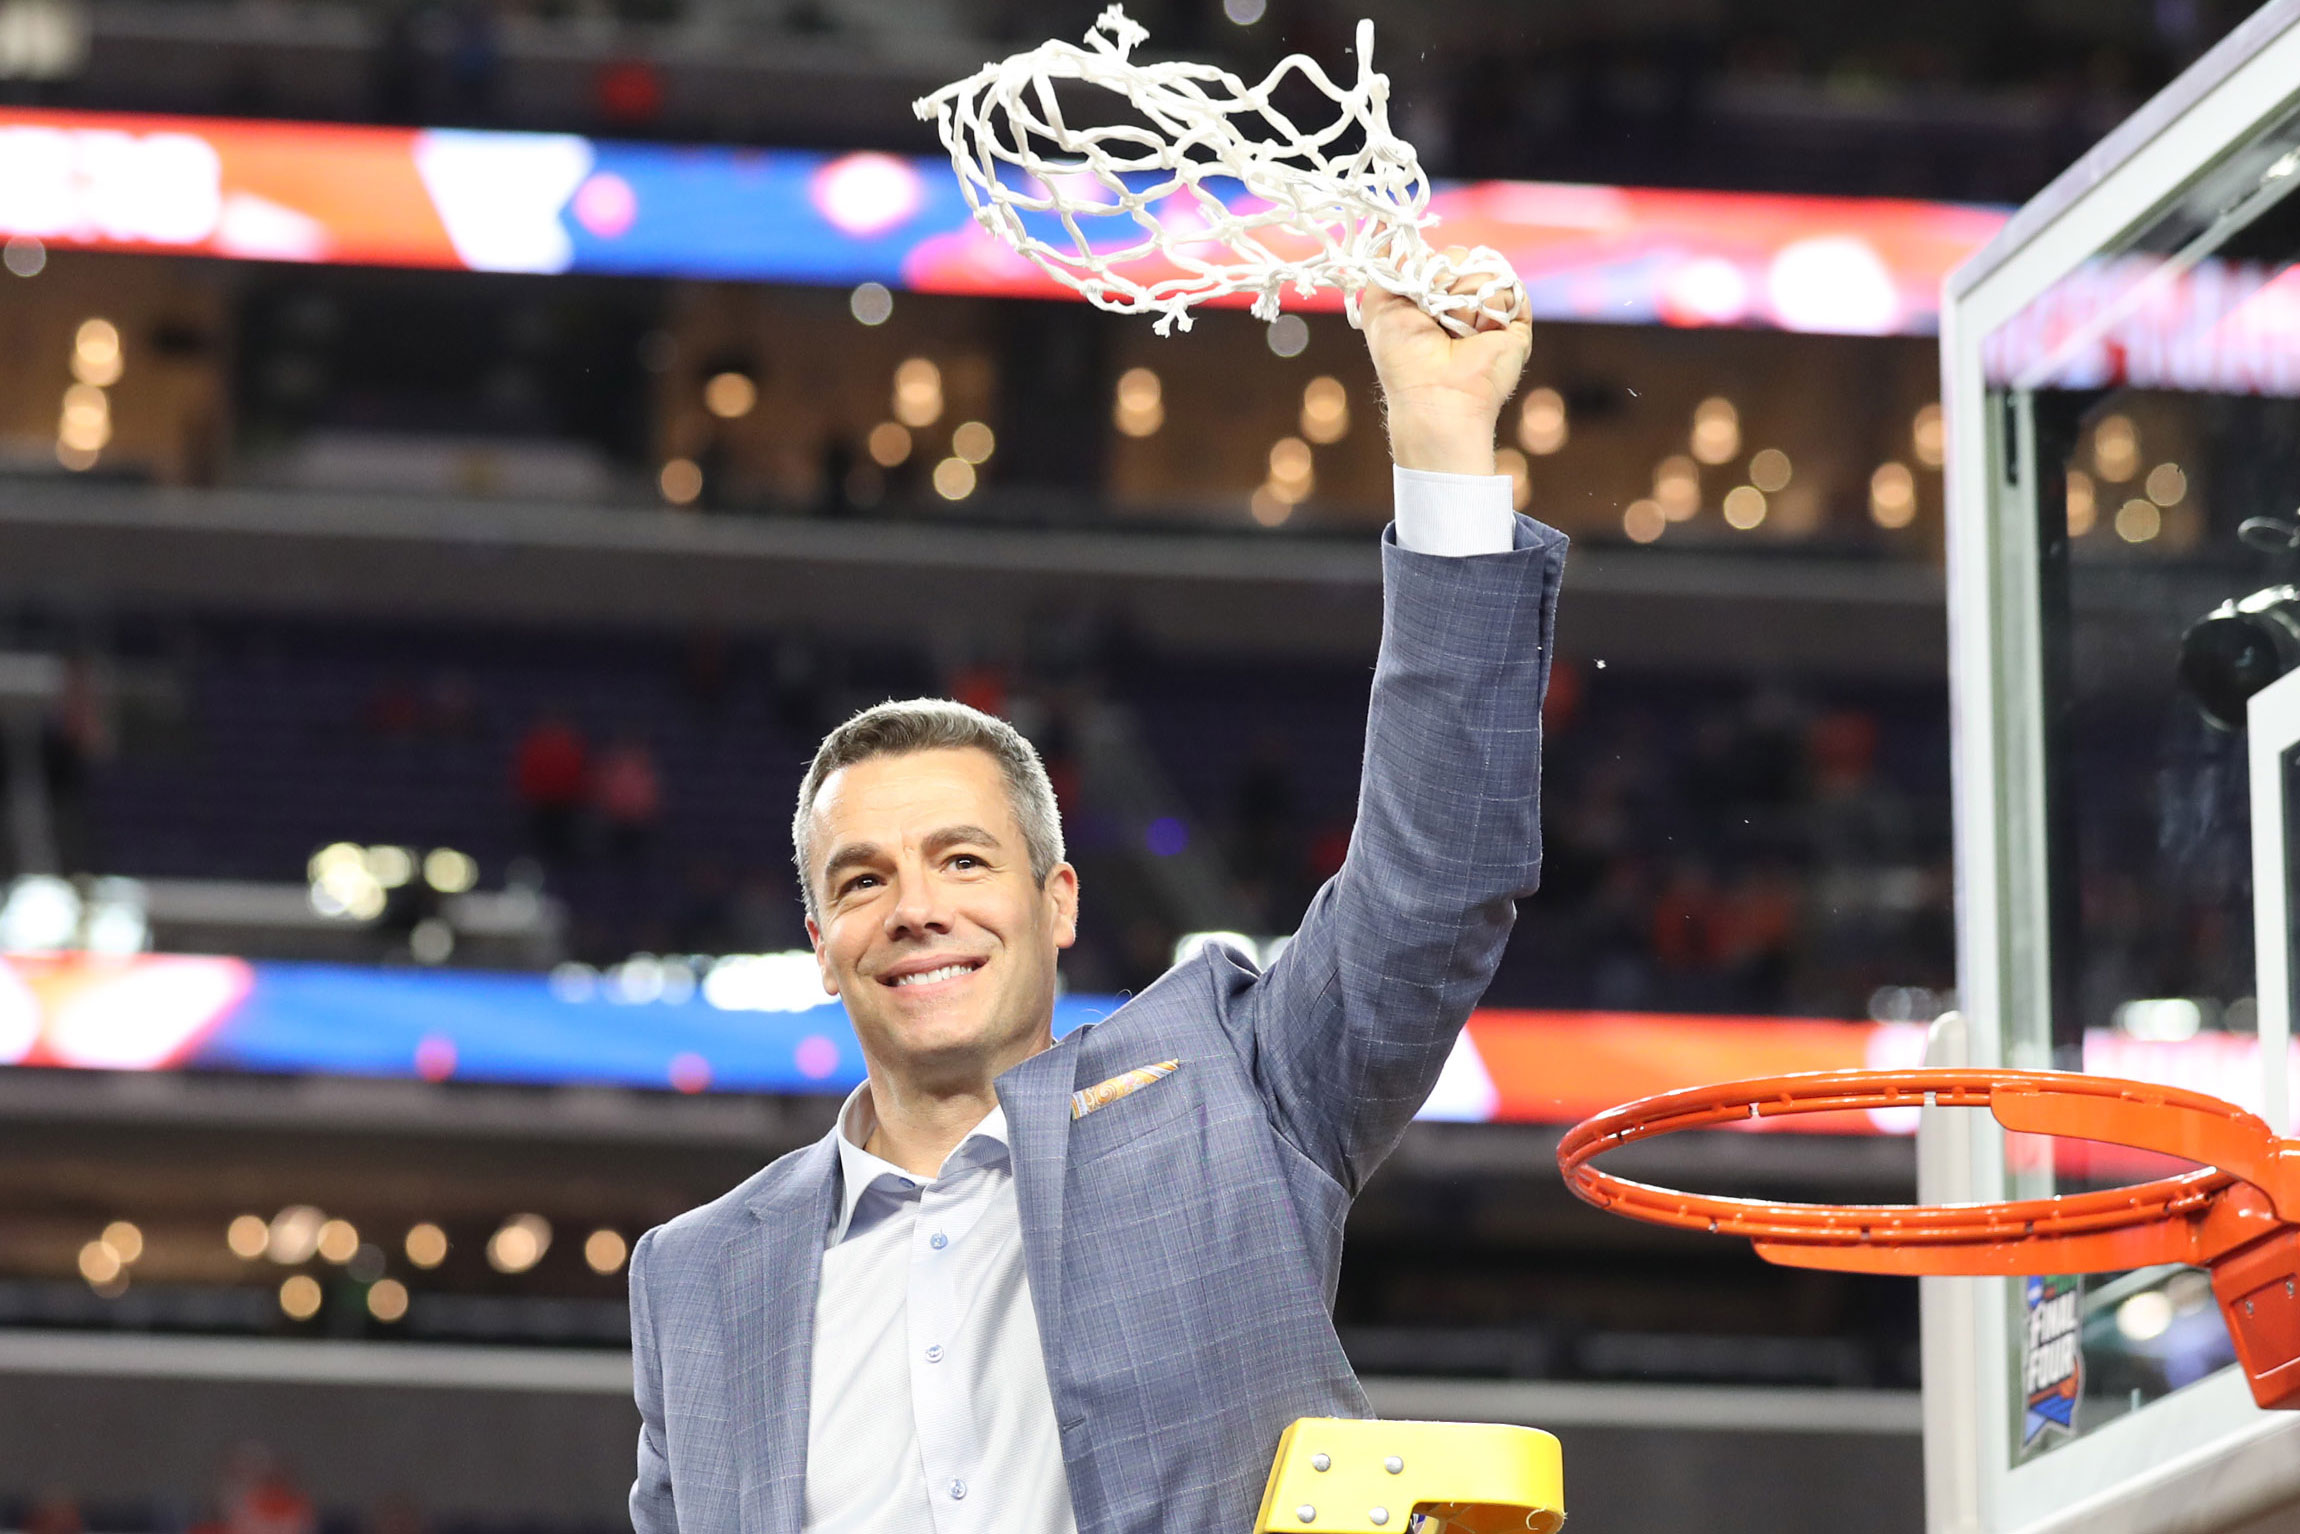 Just a few weeks after cutting down the nets in Minneapolis, UVA's Tony Bennett received an extraordinary honor from Fortune magazine.